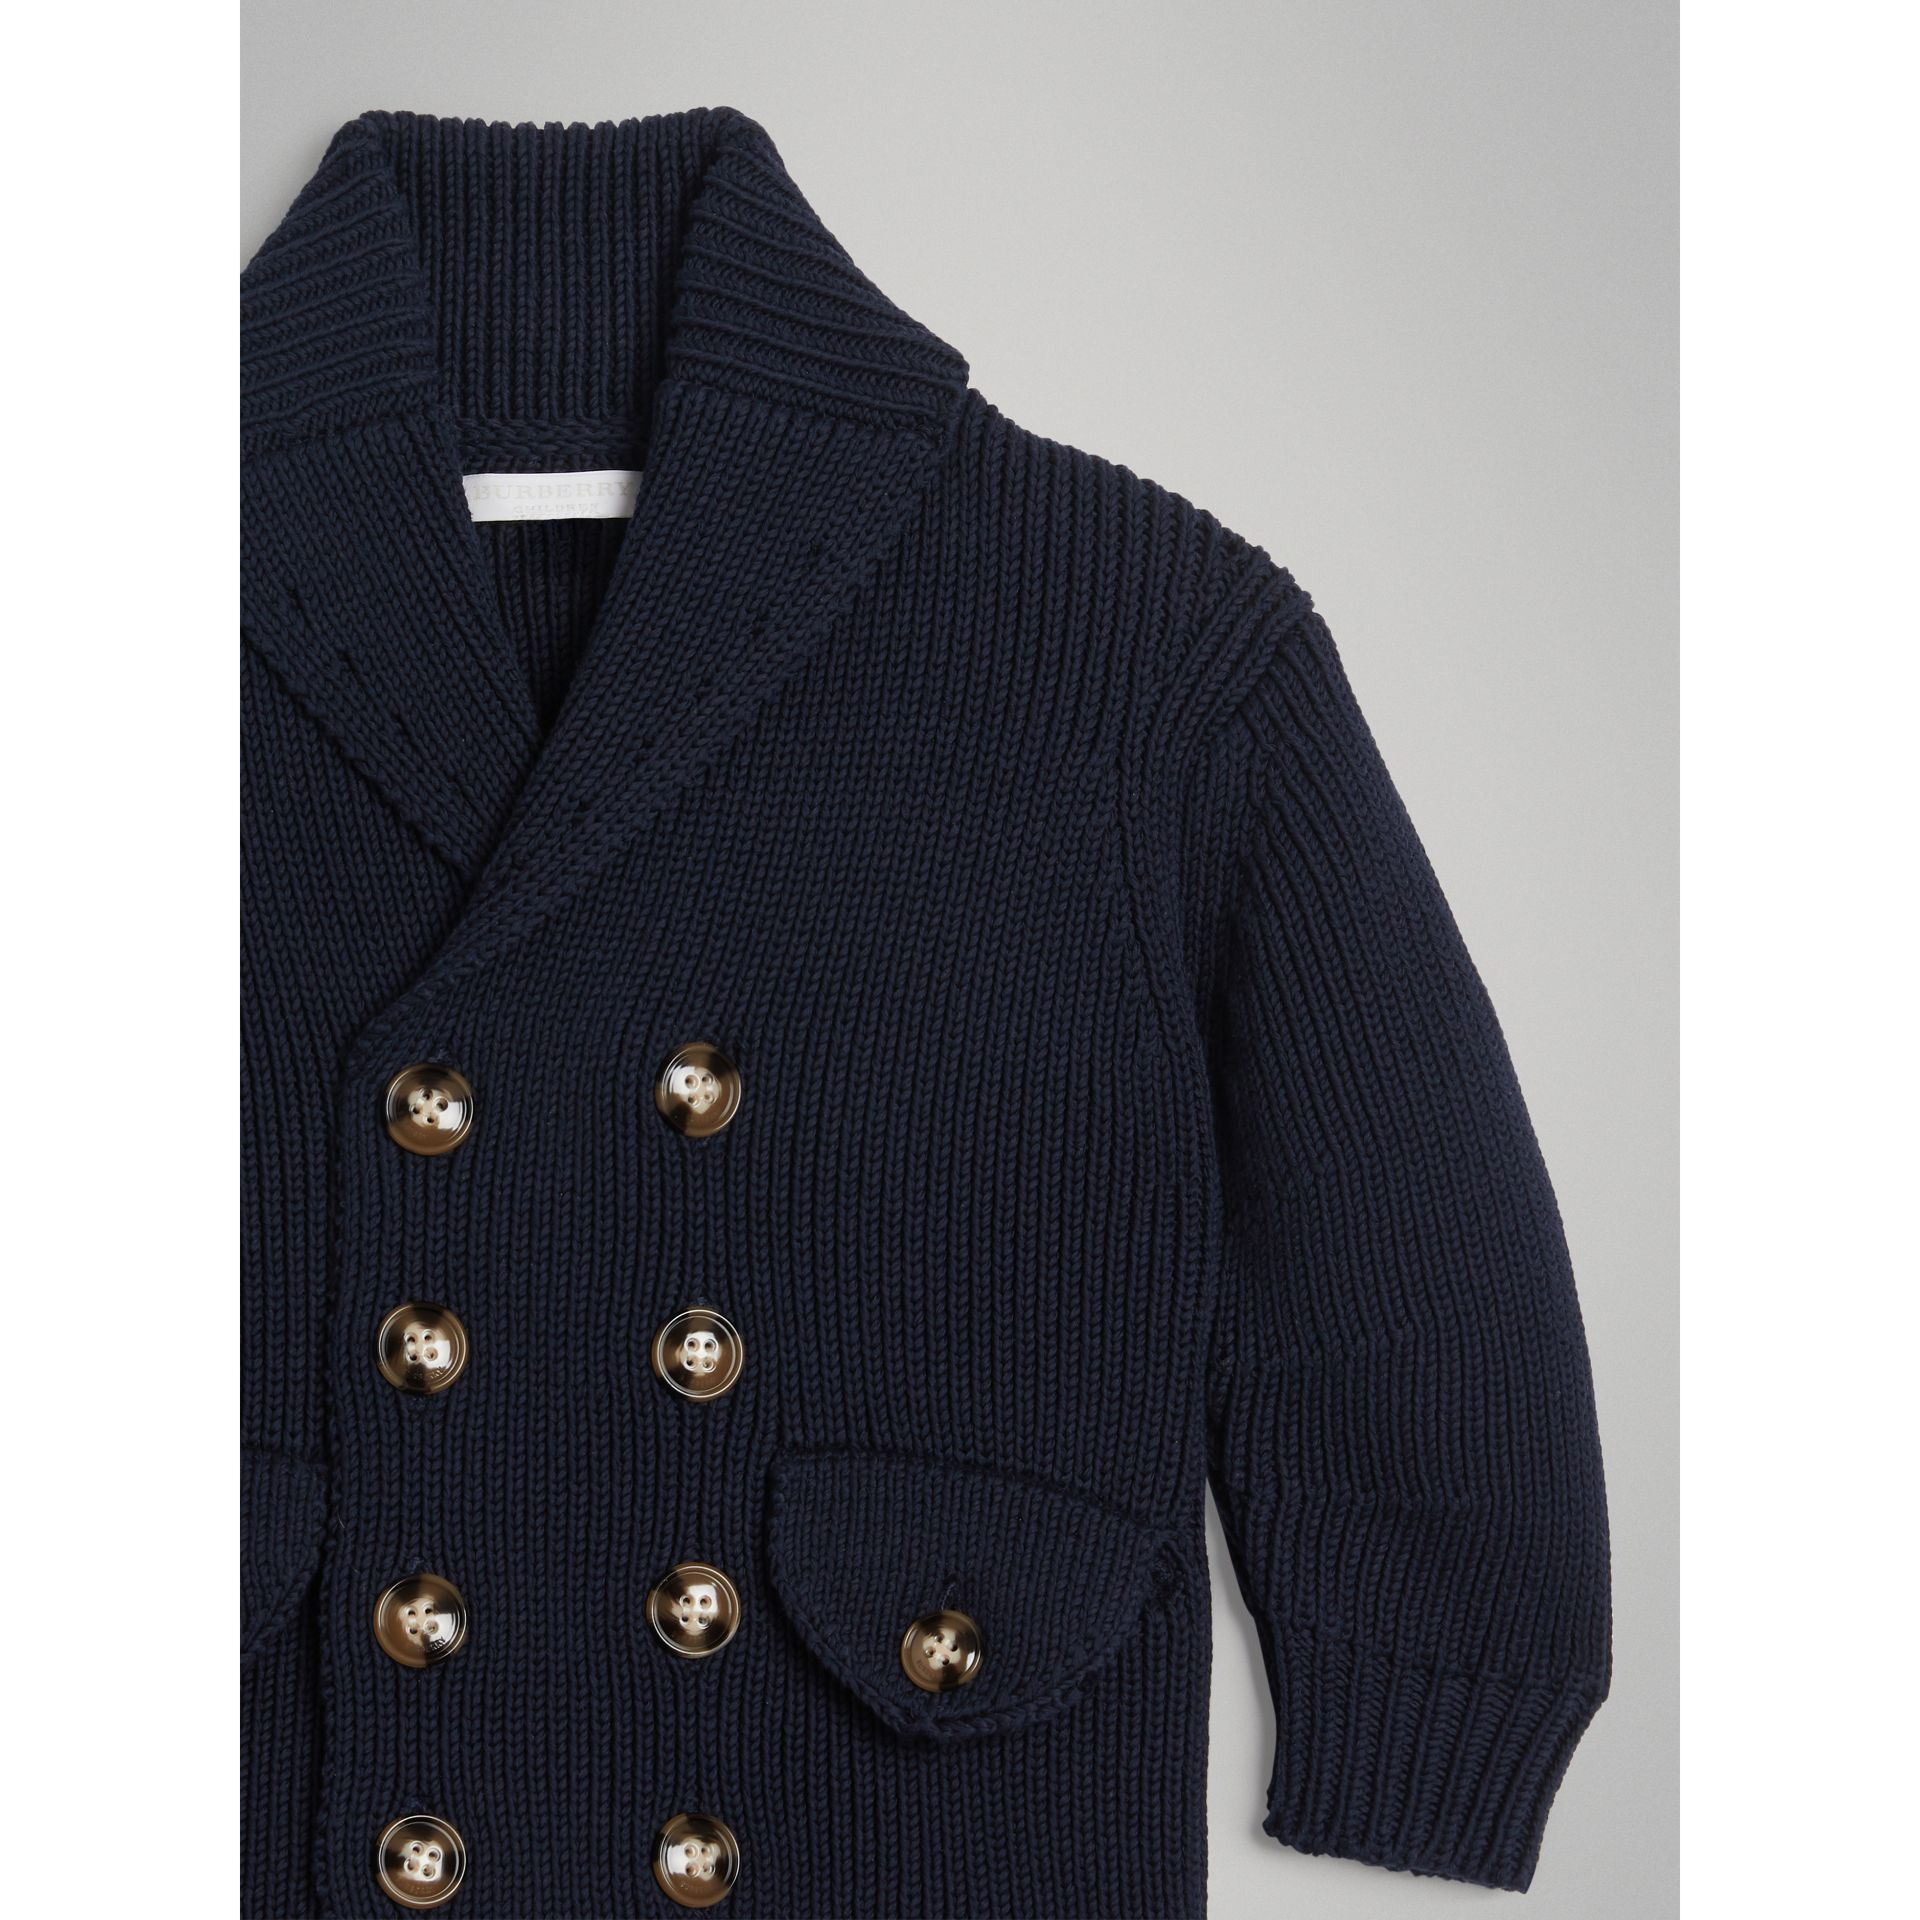 Cotton Knit Pea Coat Cardigan in Navy - Boy | Burberry Australia - gallery image 4